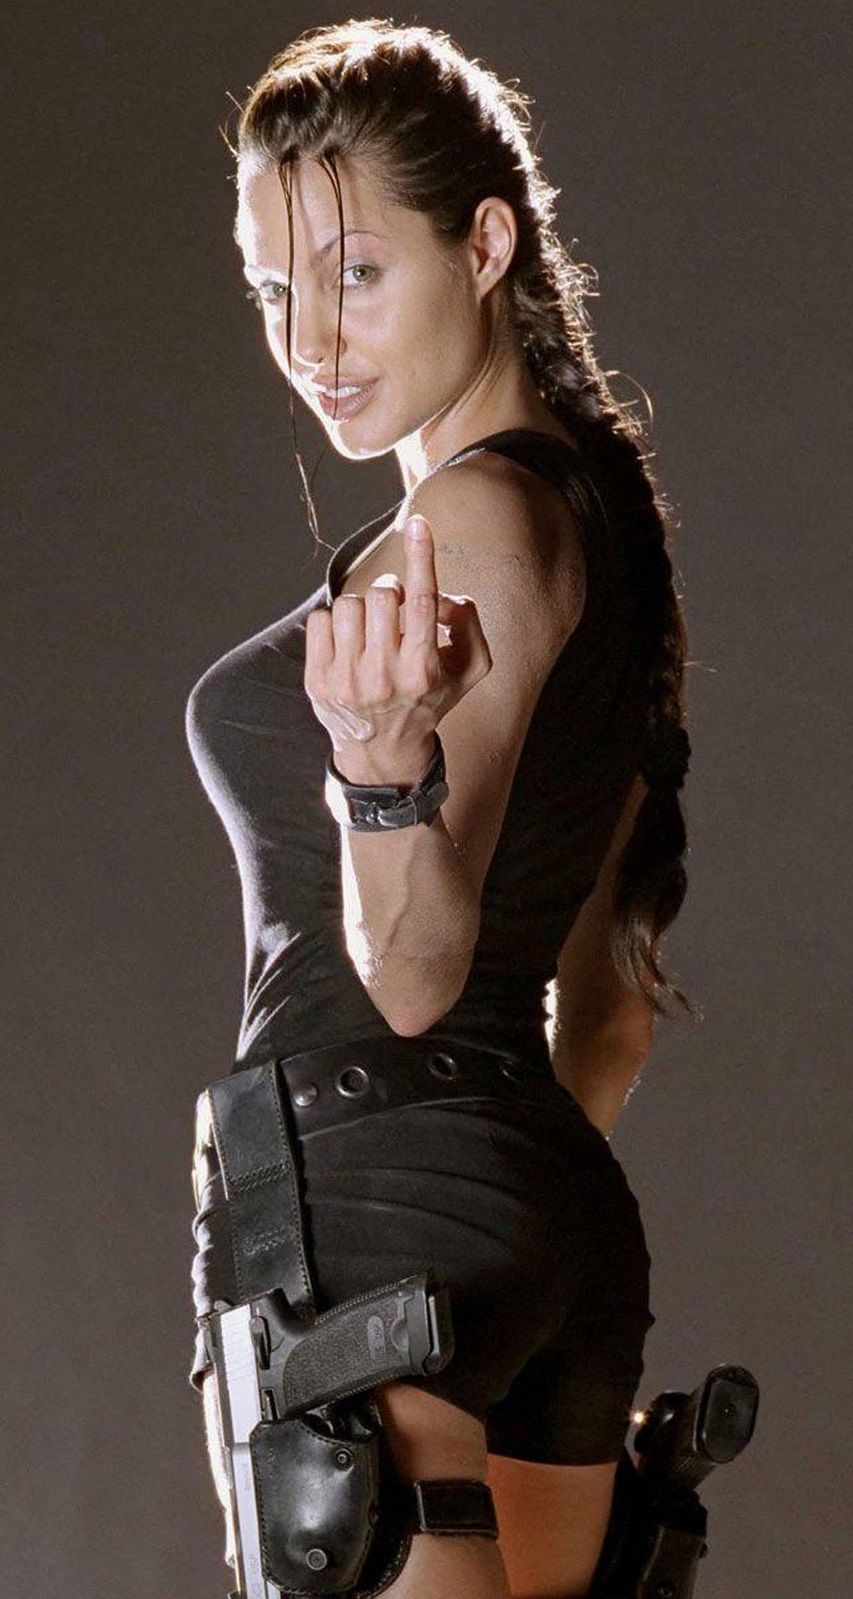 angelina jolie s ass wanted